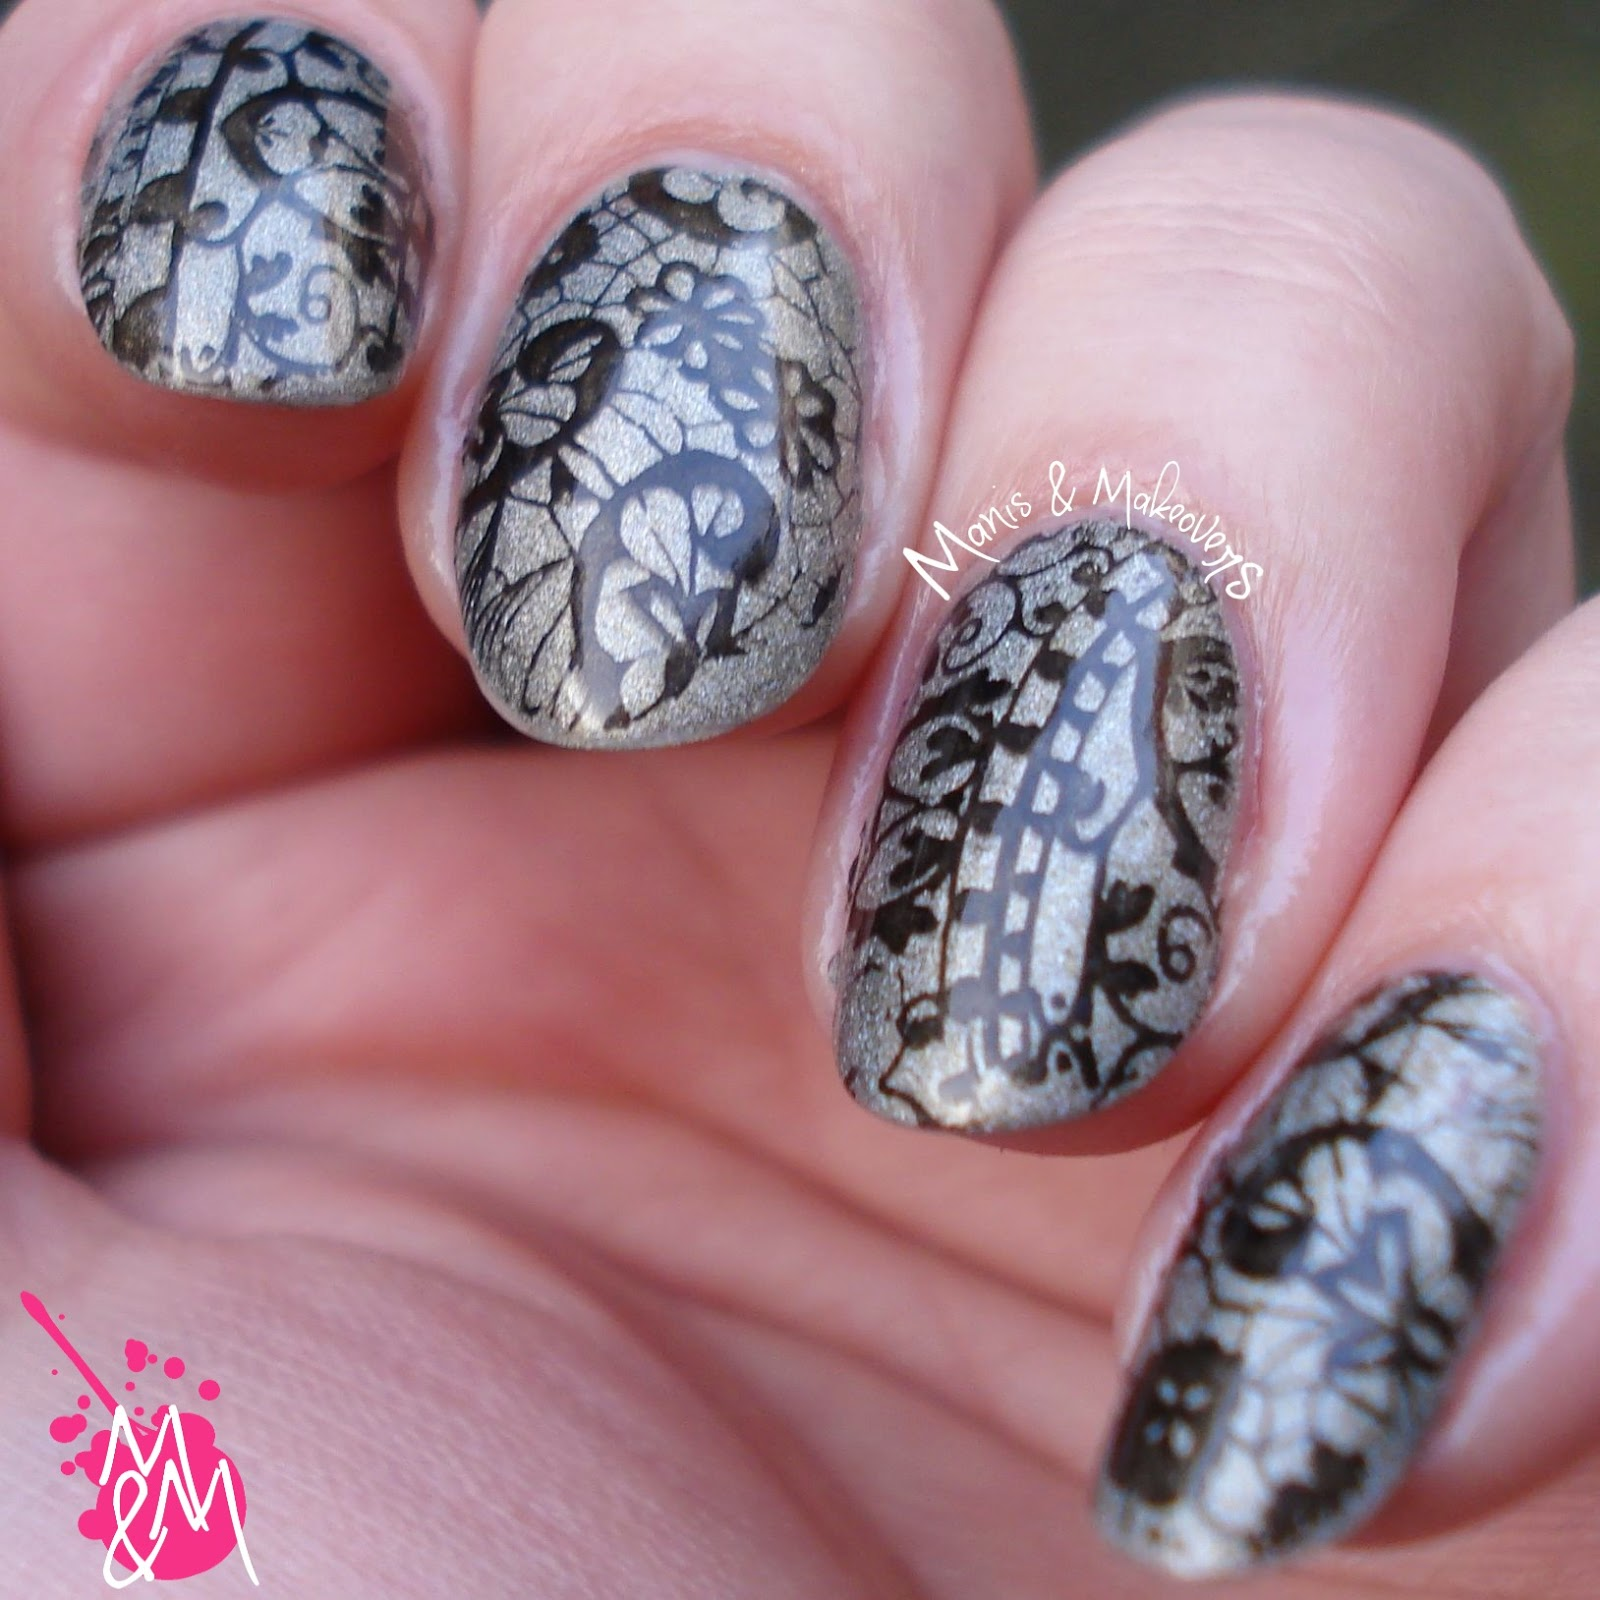 Manis makeovers bp 02 stamping bridal mani the base colour is el corazon active bio gel nail polish prisma 42321 and i stamped over it with black stampy polish from essence prinsesfo Image collections